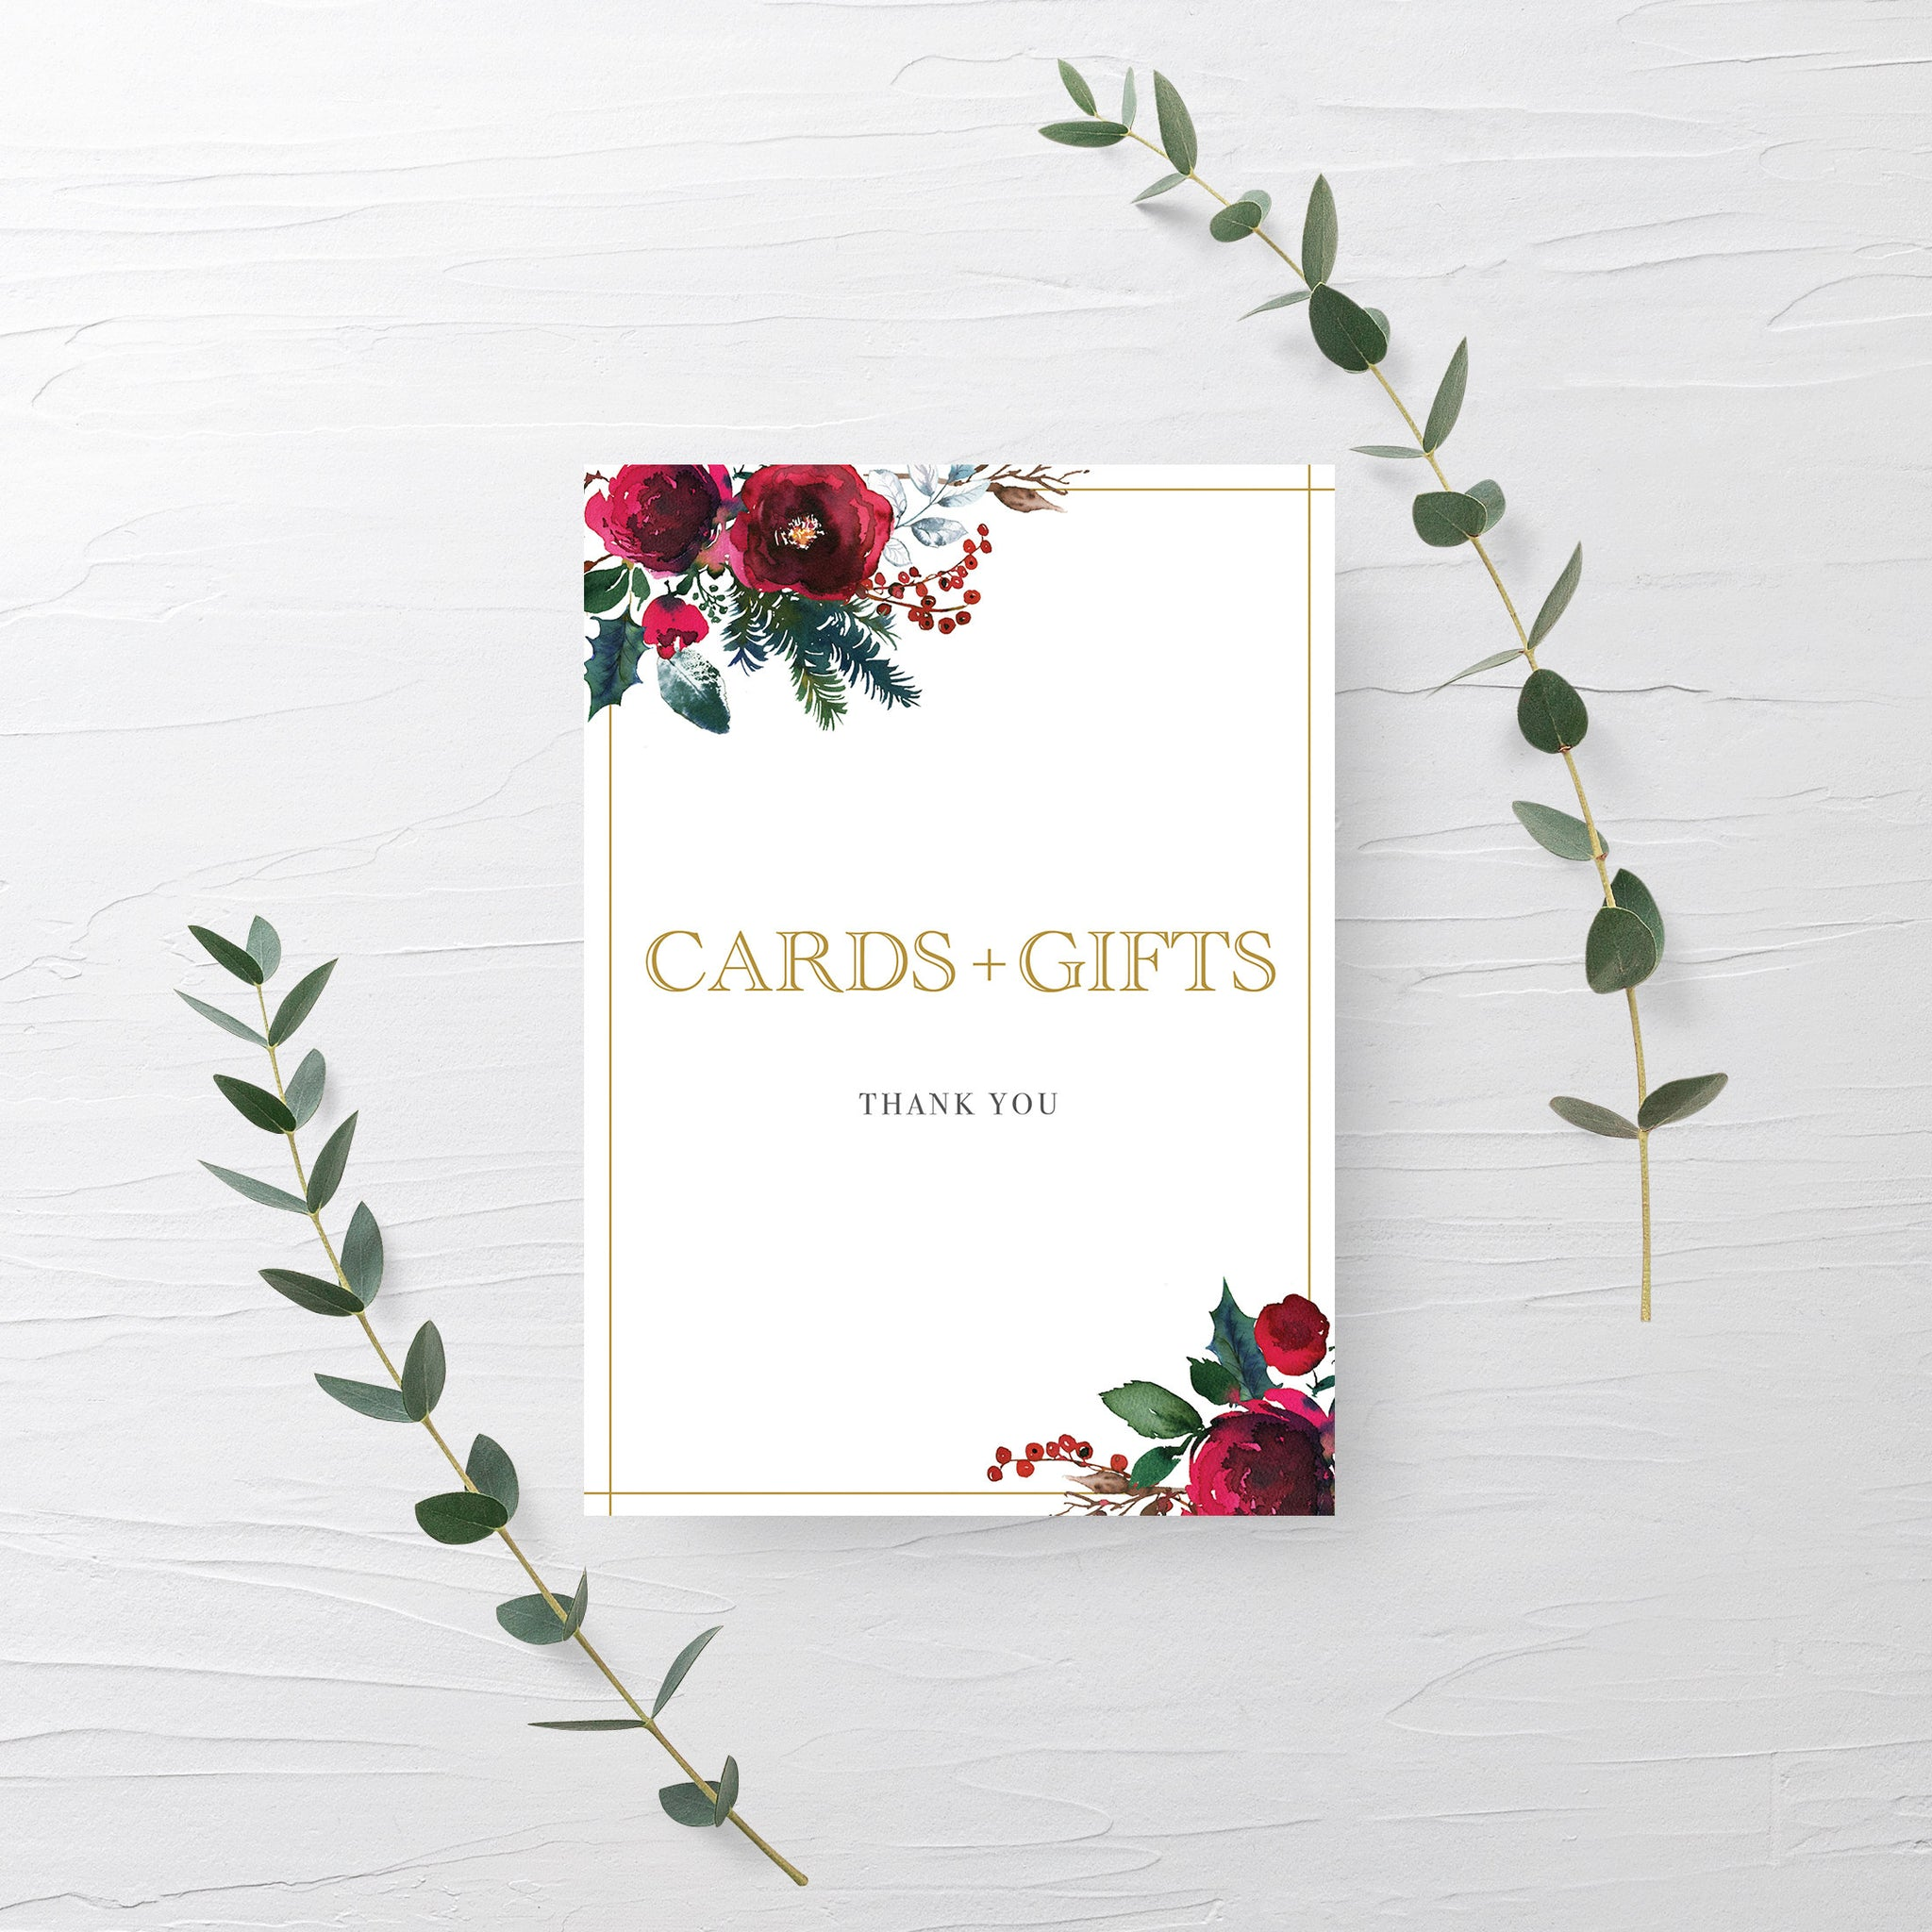 Christmas Wedding Cards and Gifts Sign Printable, Christmas Bridal Shower Cards and Gifts Printable Decorations, INSTANT DOWNLOAD - CG100